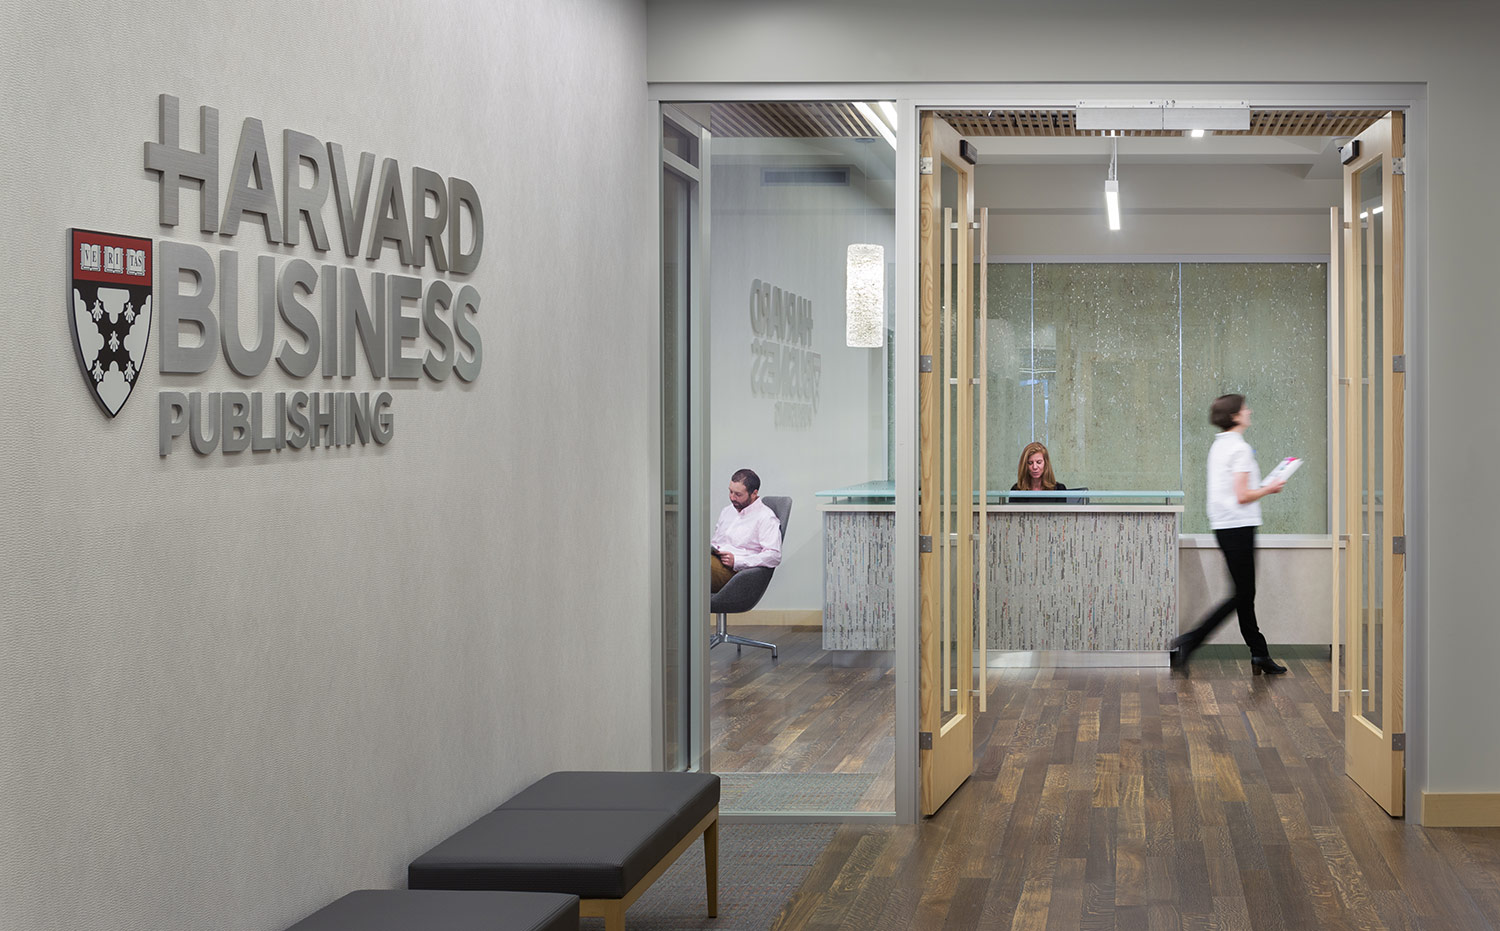 Harvard Business Publishing Headquarters